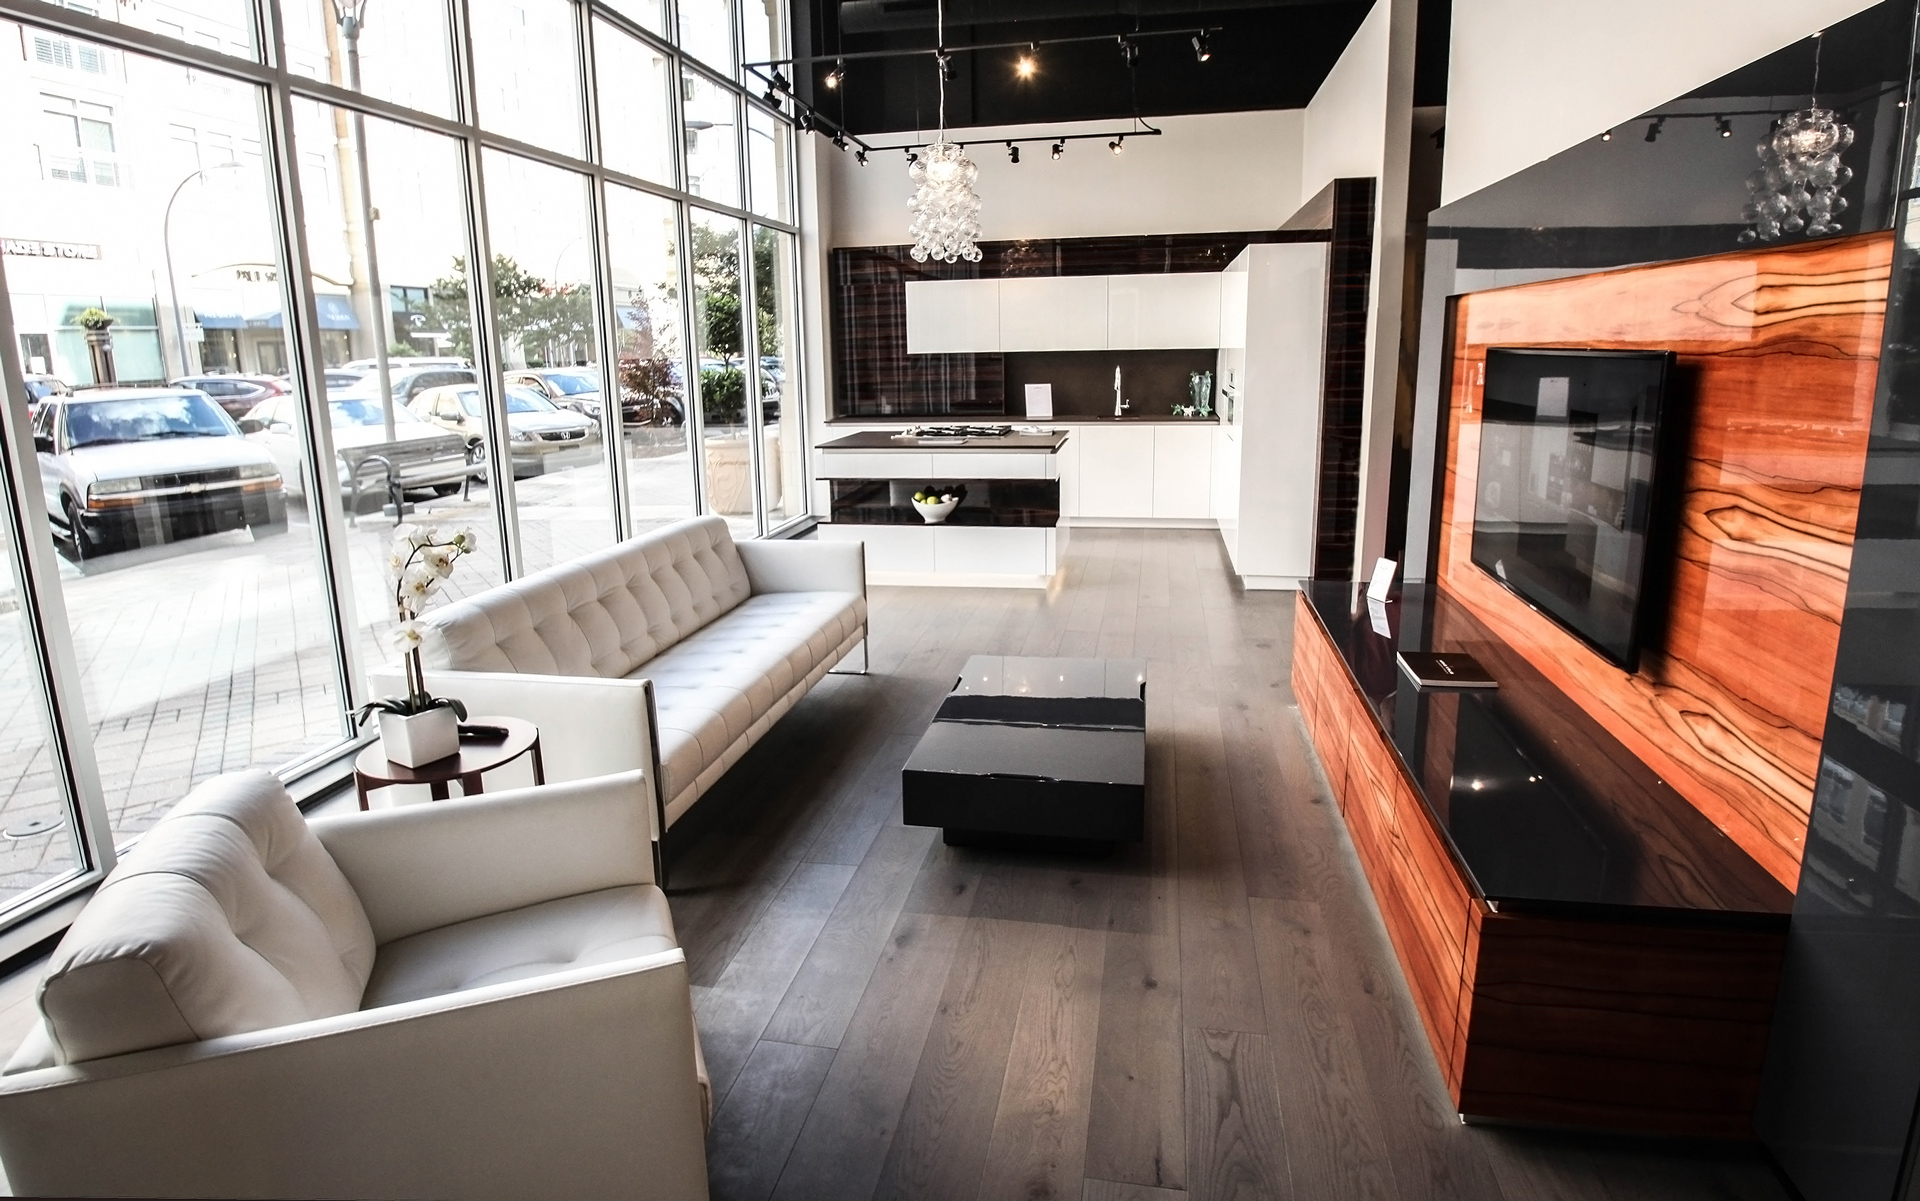 Another showroom was opened in the USA presenting the HANÁK furniture